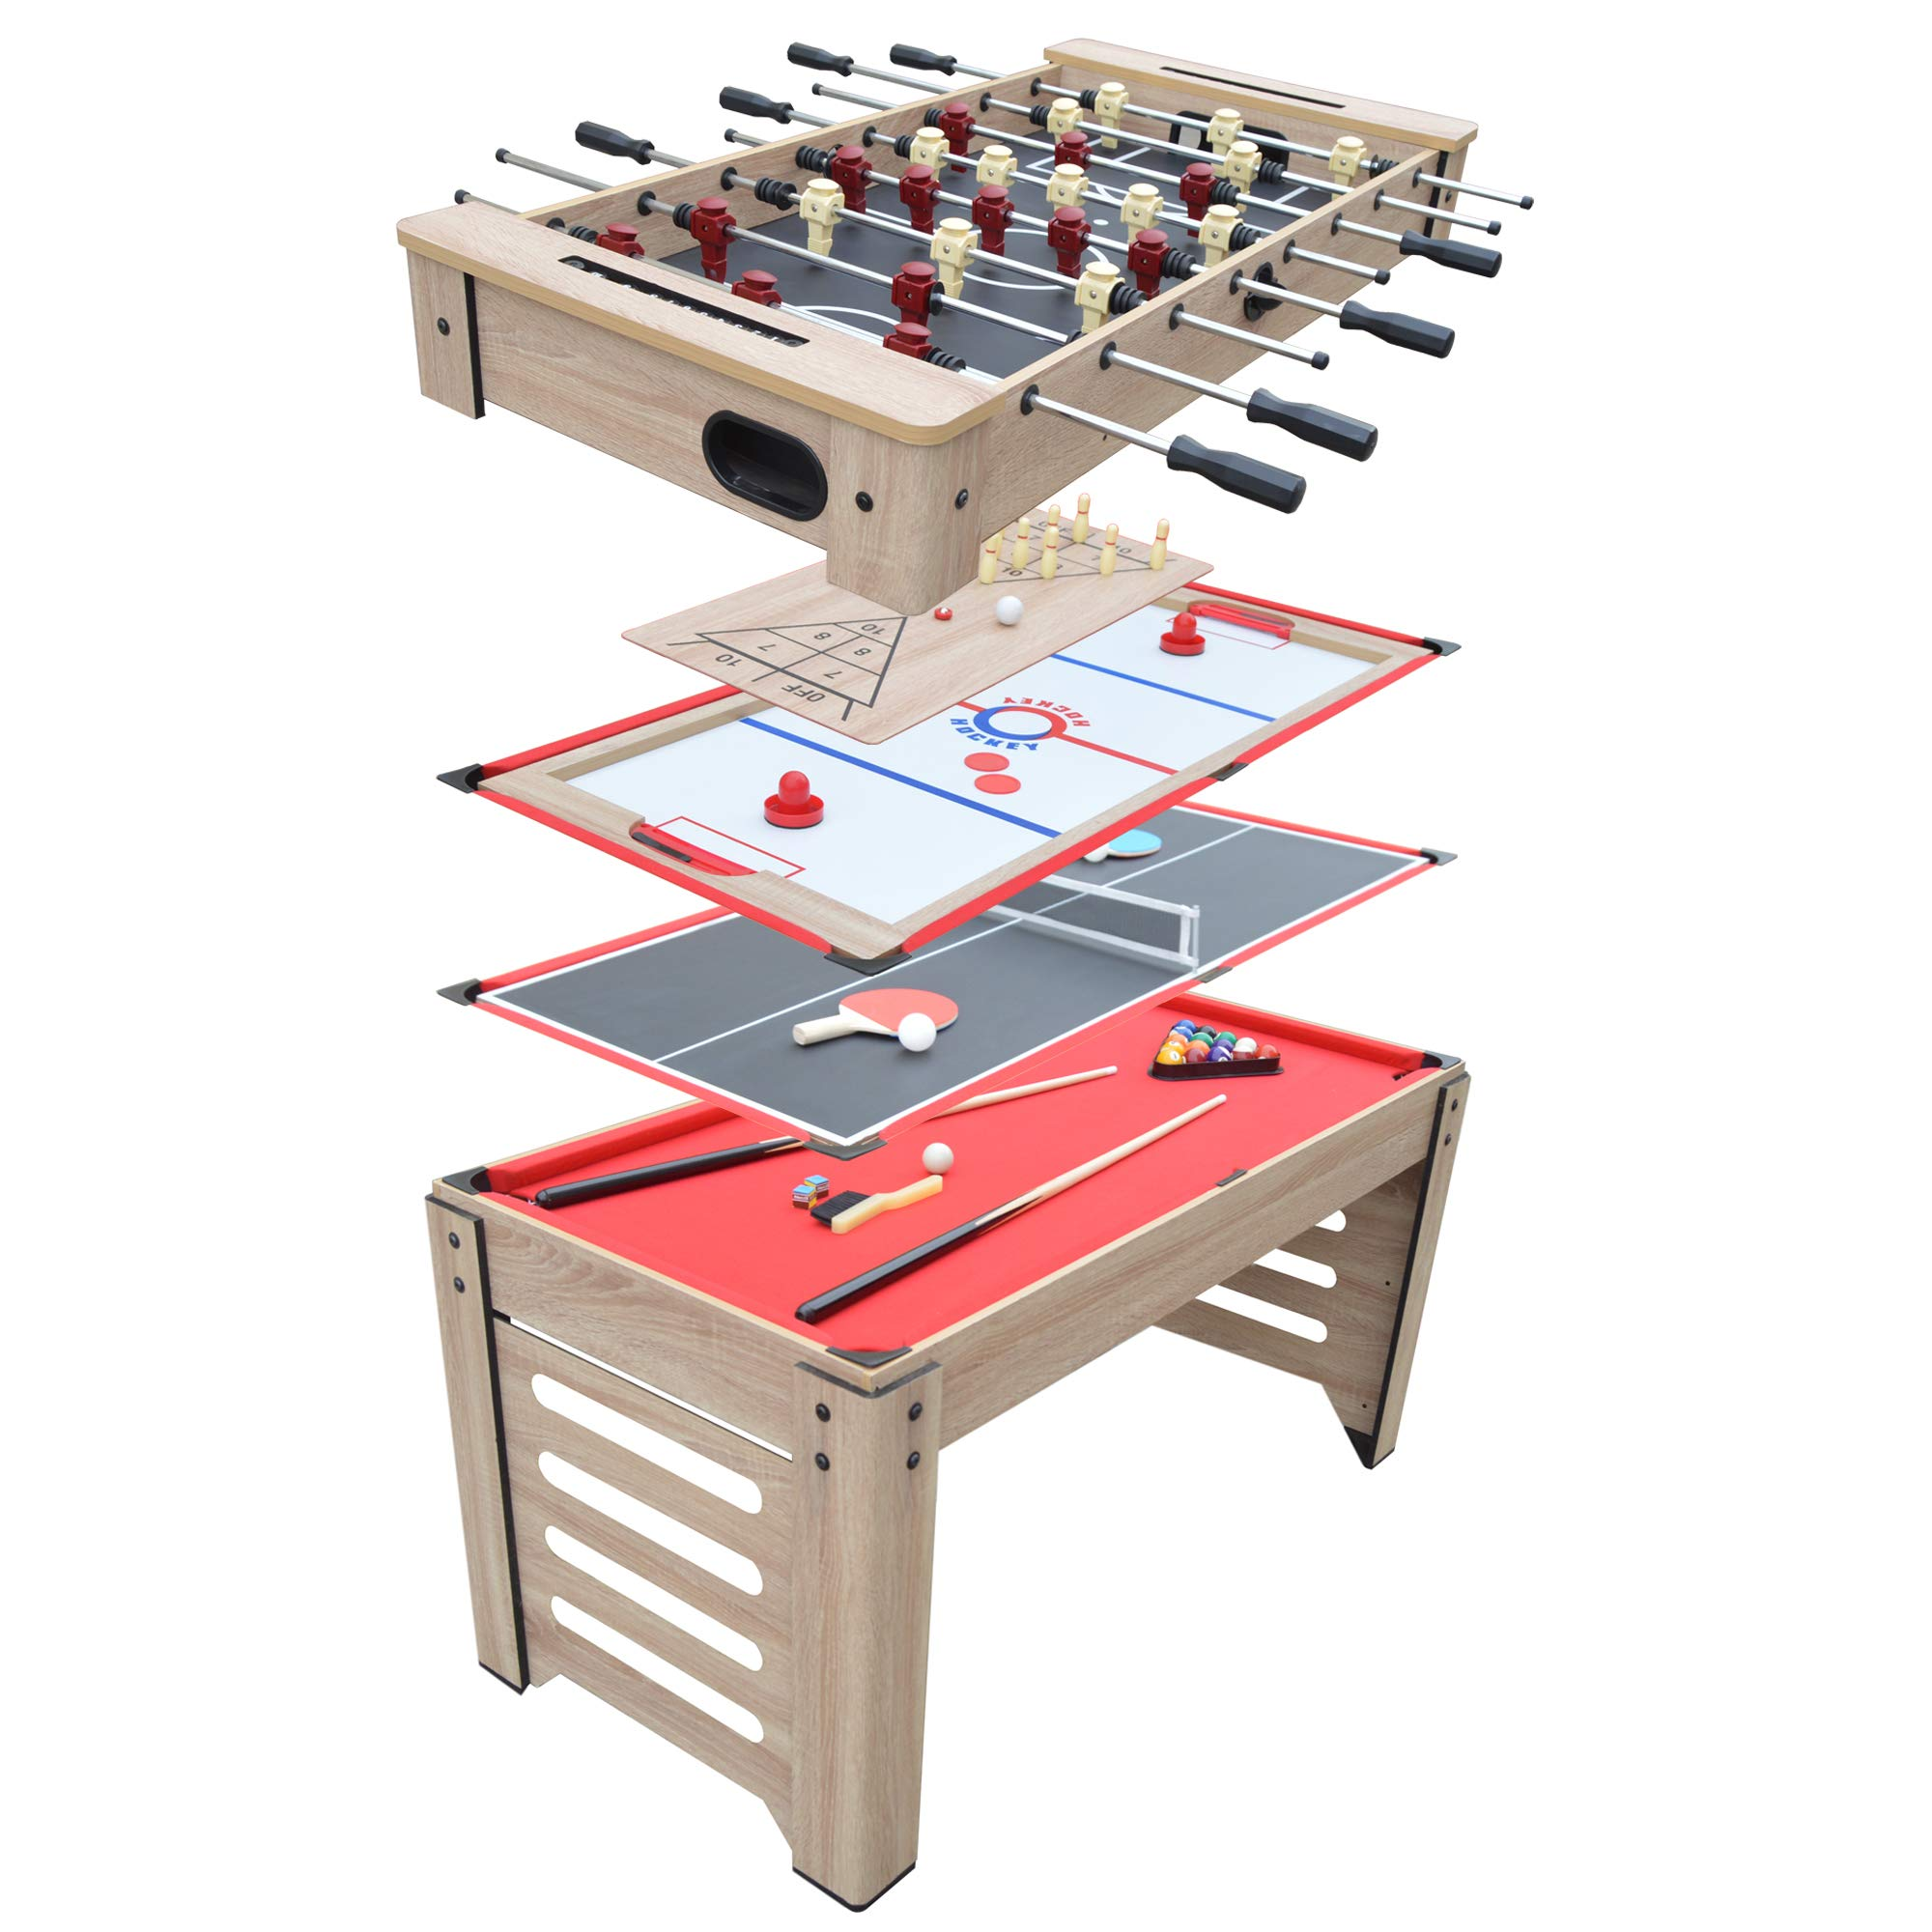 Hathaway Madison 54-in 6-in-1 Multi Game Table, Driftwood by Hathaway